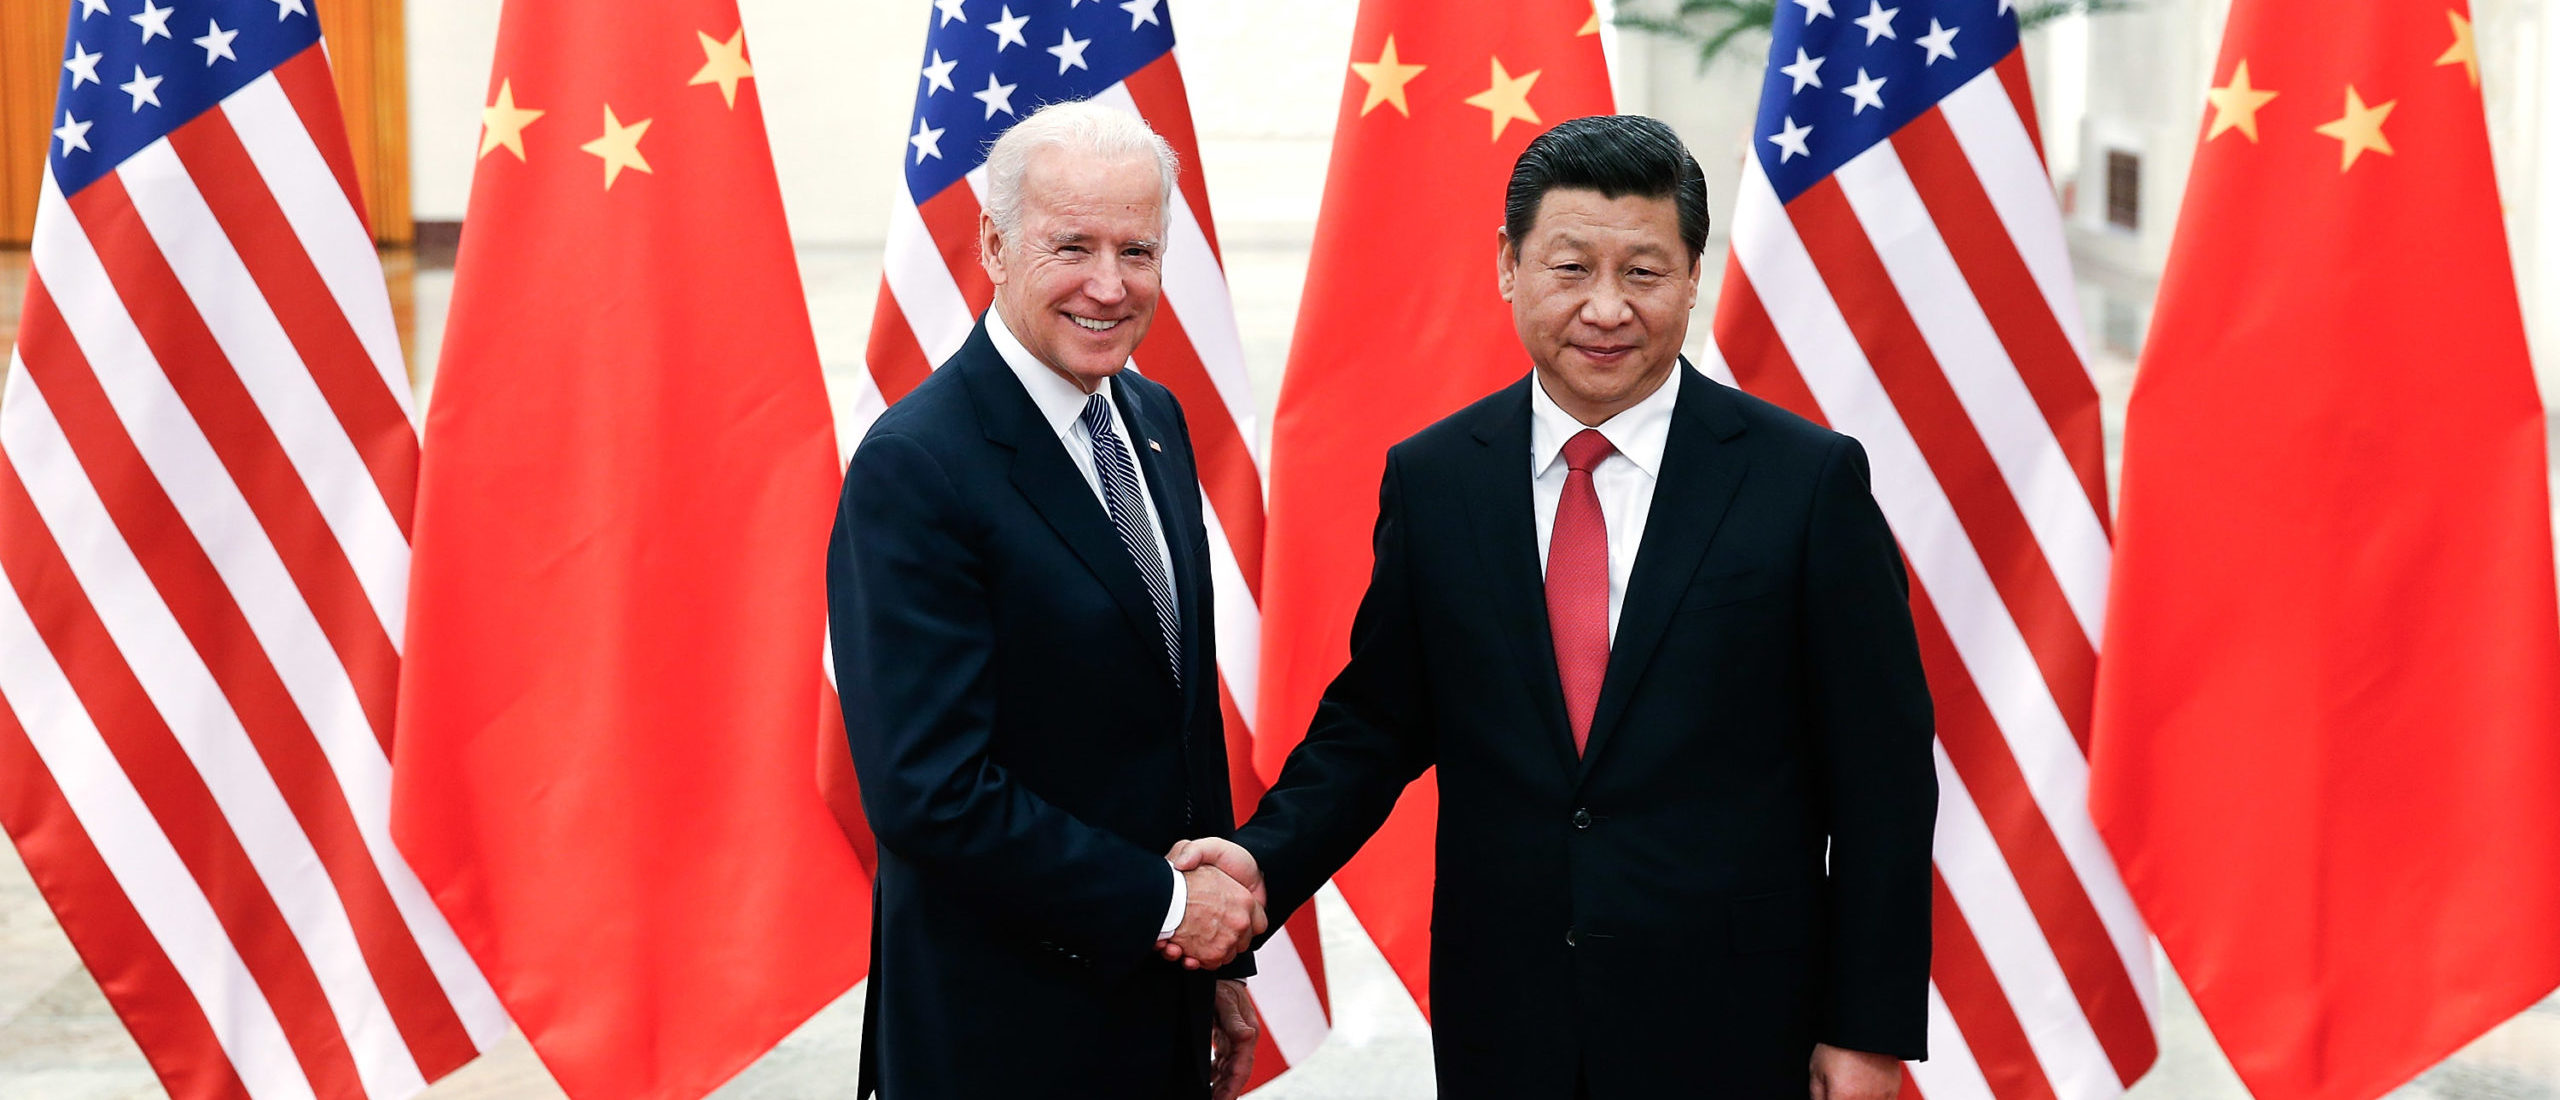 Chinese President Xi Jinping shake hands with President Joe Biden on Dec. 4, 2013 in Beijing, China. (Lintao Zhang/Getty Images)